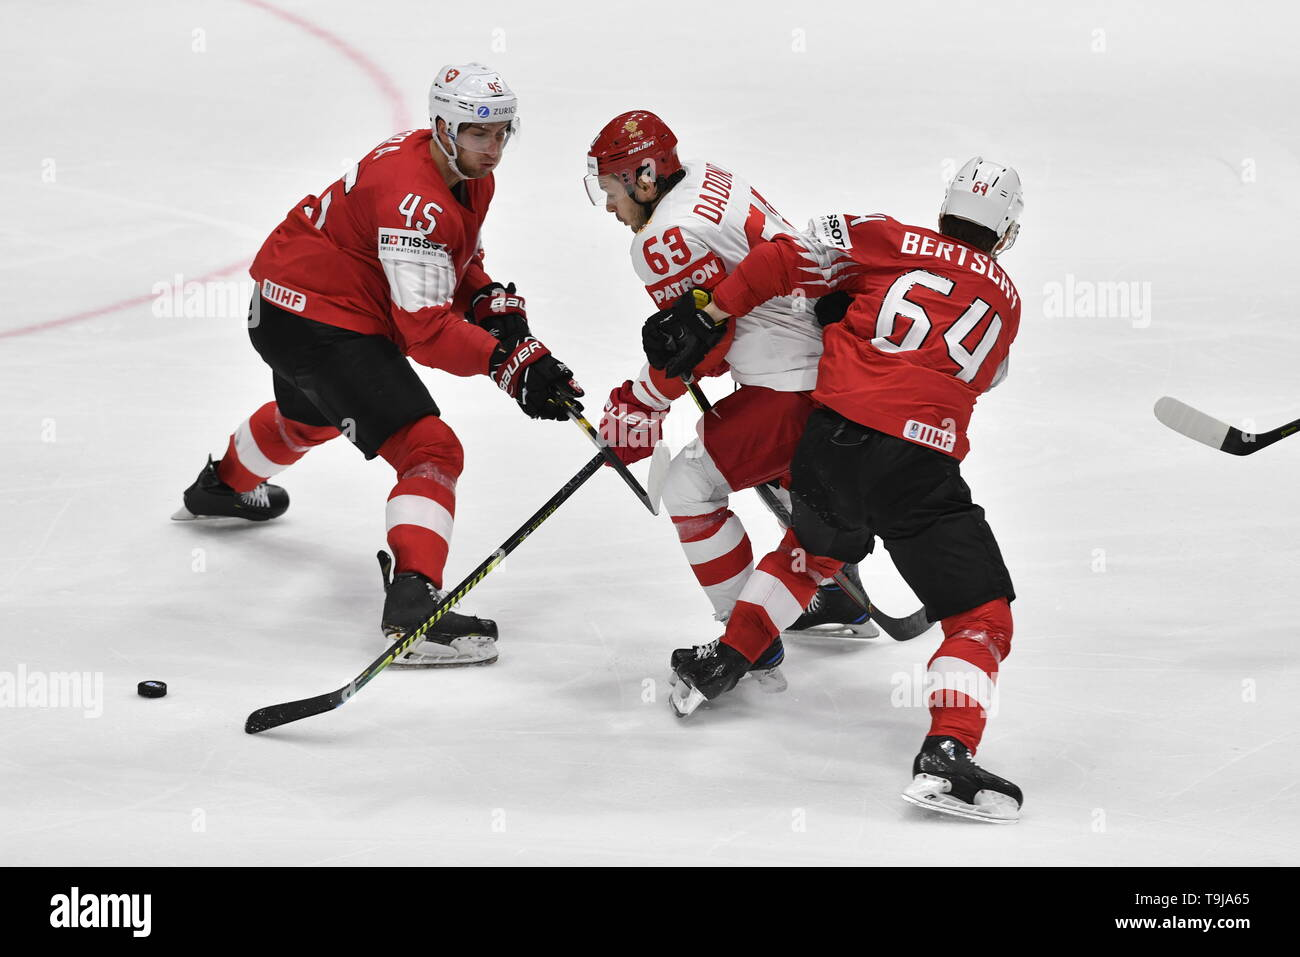 Bratislava, Slovakia. 19th May, 2019. L-R Michael Fora (SUI), Yevgeni Dadonov (RUS) and Christoph Bertschy (SUI) in action during the match between Switzerland and Russia within the 2019 IIHF World Championship in Bratislava, Slovakia, on May 19, 2019. Credit: Vit Simanek/CTK Photo/Alamy Live News Stock Photo